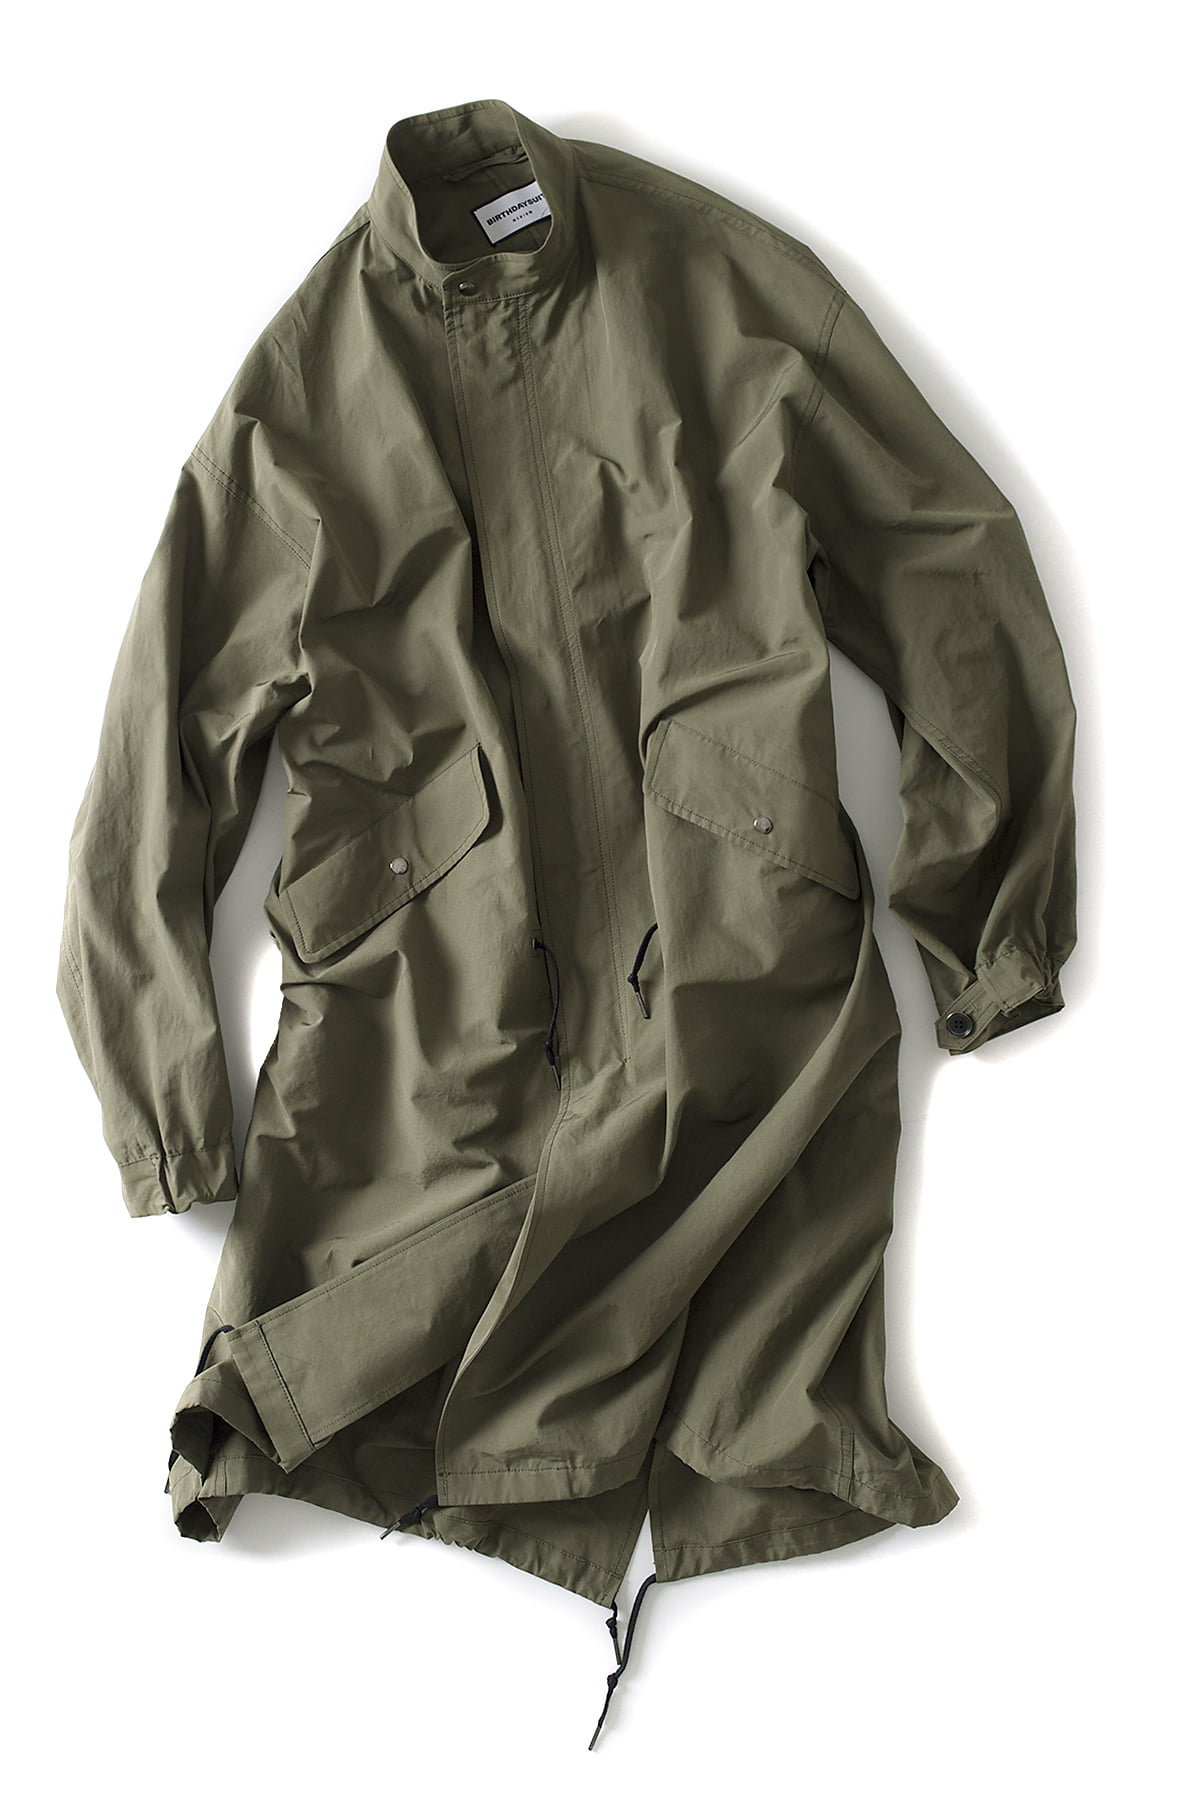 BIRTHDAYSUIT : Fishtail Parka (Olive Green)